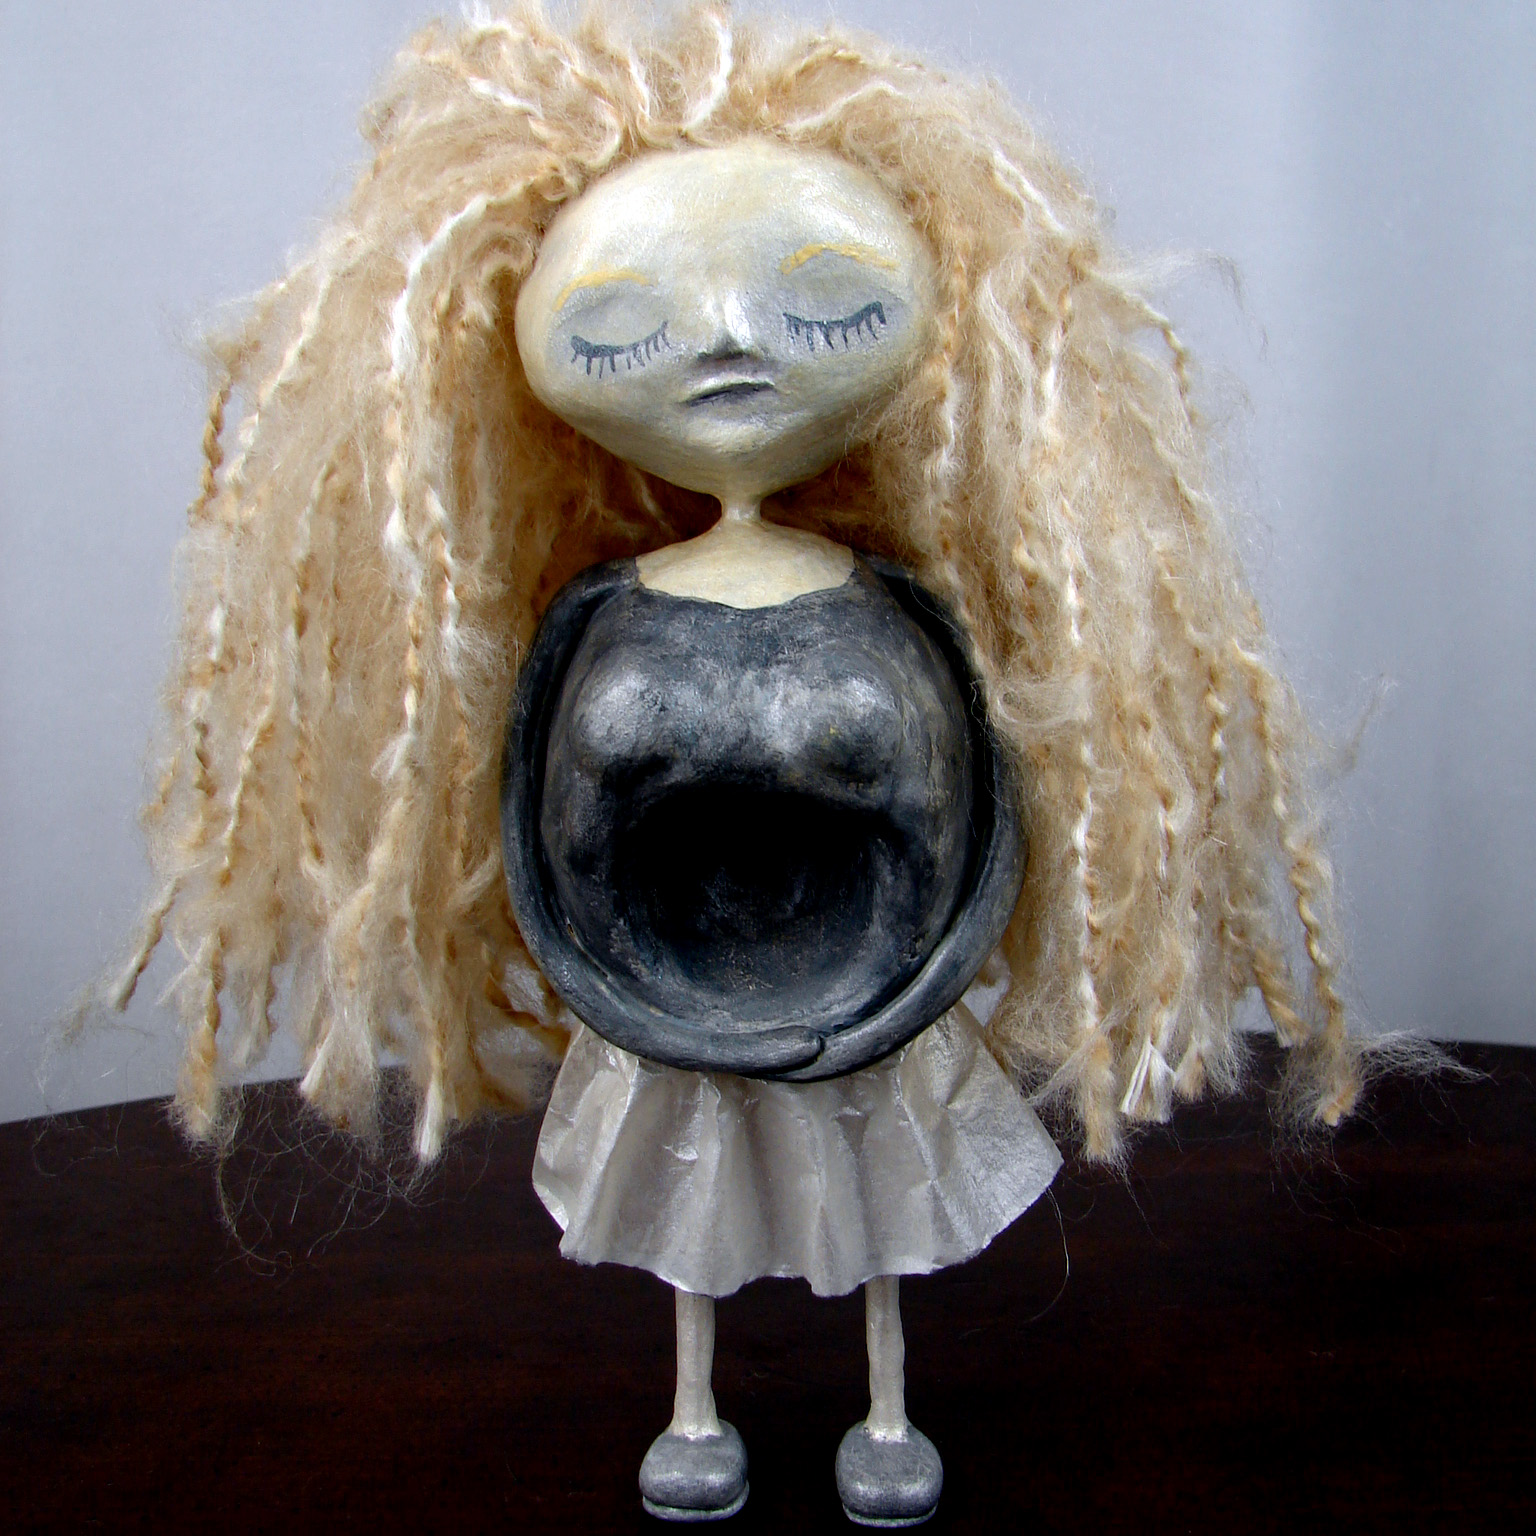 Sorrowful Sister Art Doll by Karen Furst of Trilby Works